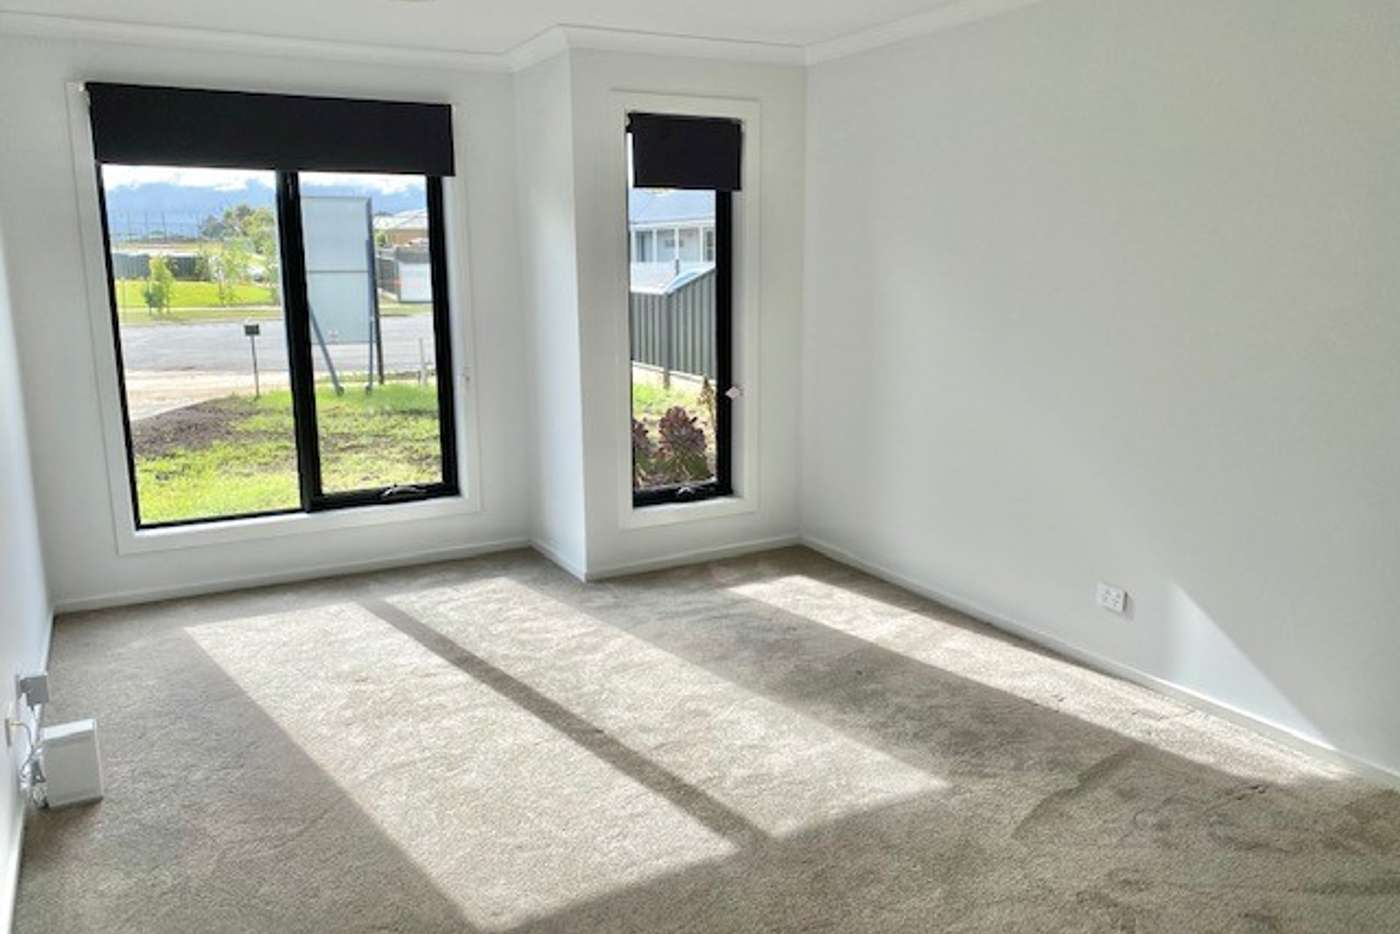 Seventh view of Homely house listing, 15 Billy Court, Colac VIC 3250